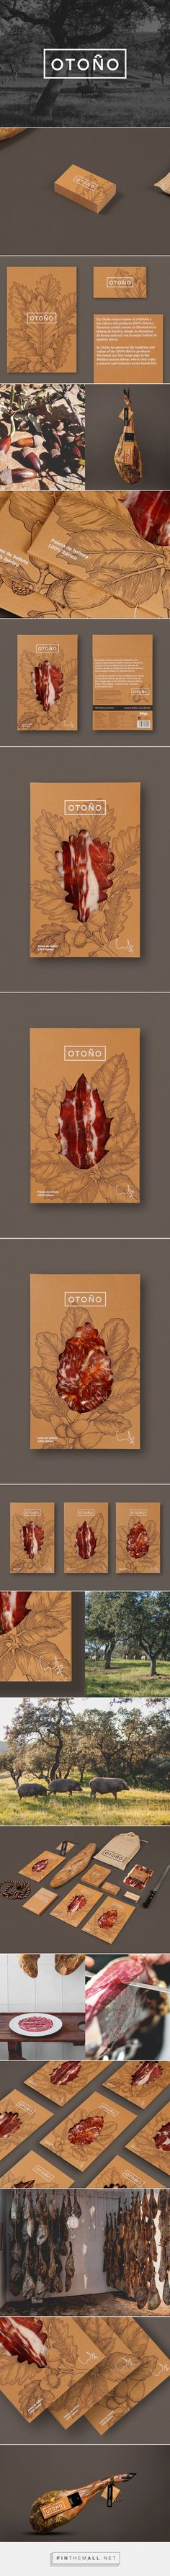 Otoño Free Range Meat Branding and Packaging by Tres Tipos Graficos | Fivestar Branding Agency – Design and Branding Agency & Curated Inspiration Gallery